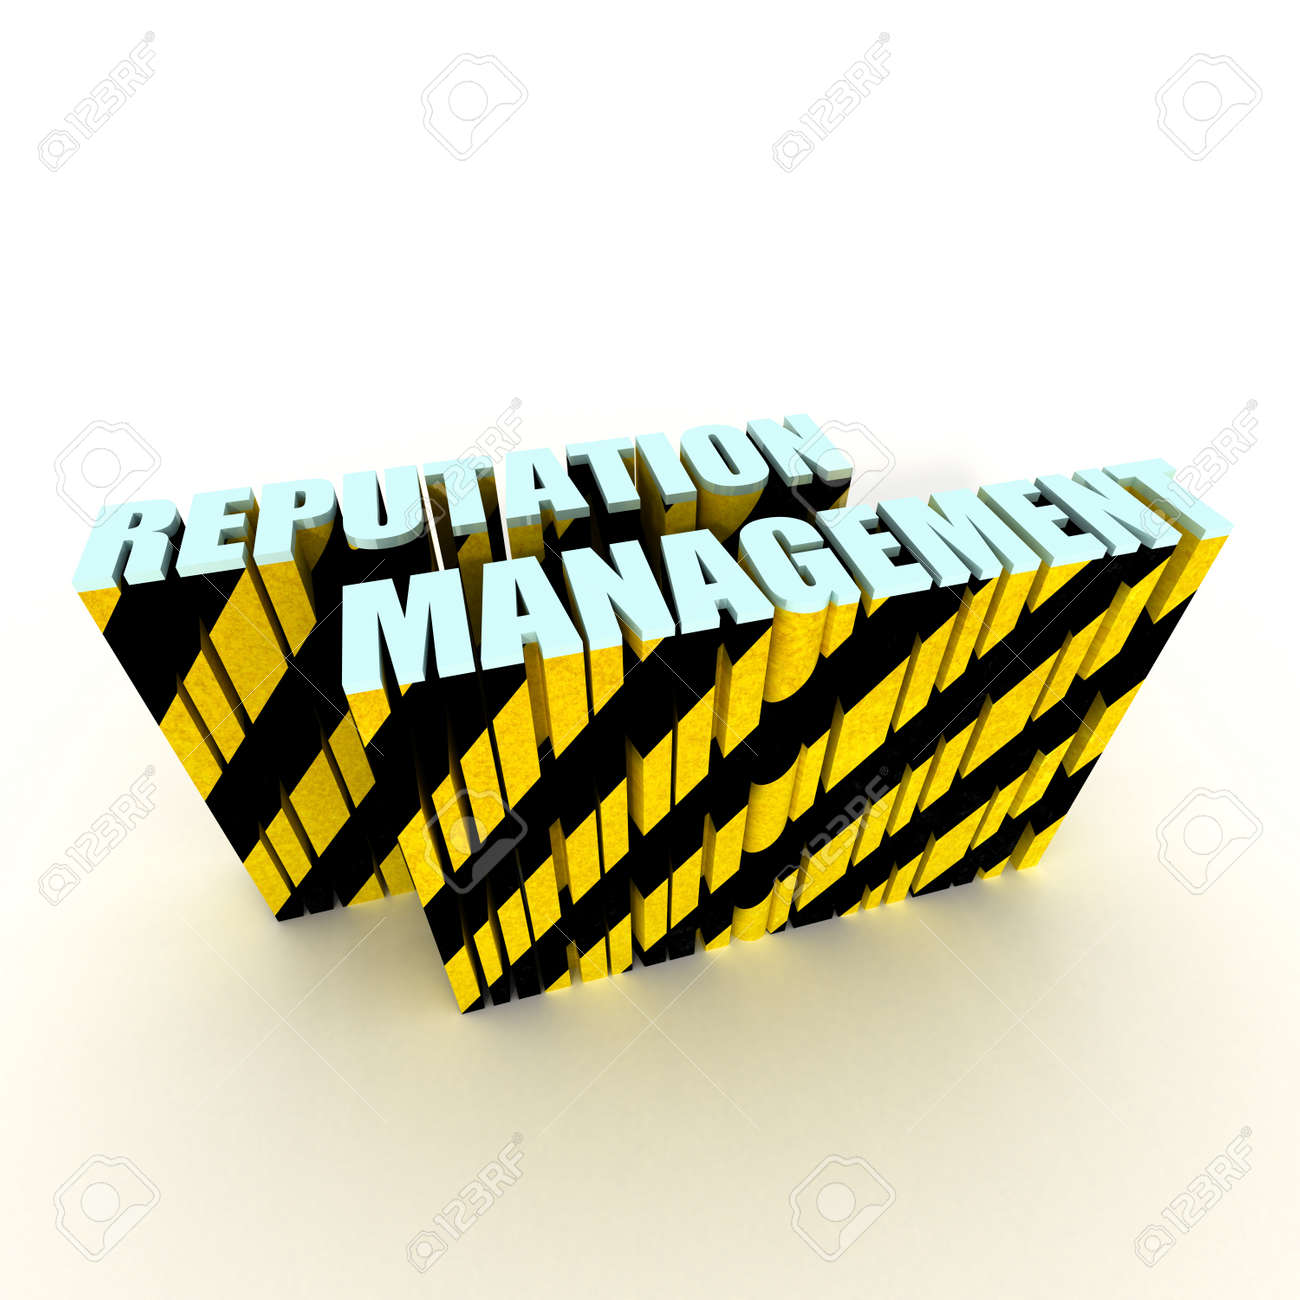 reputation management text with warning stripe tape isolated on white background Stock Photo - 9177251